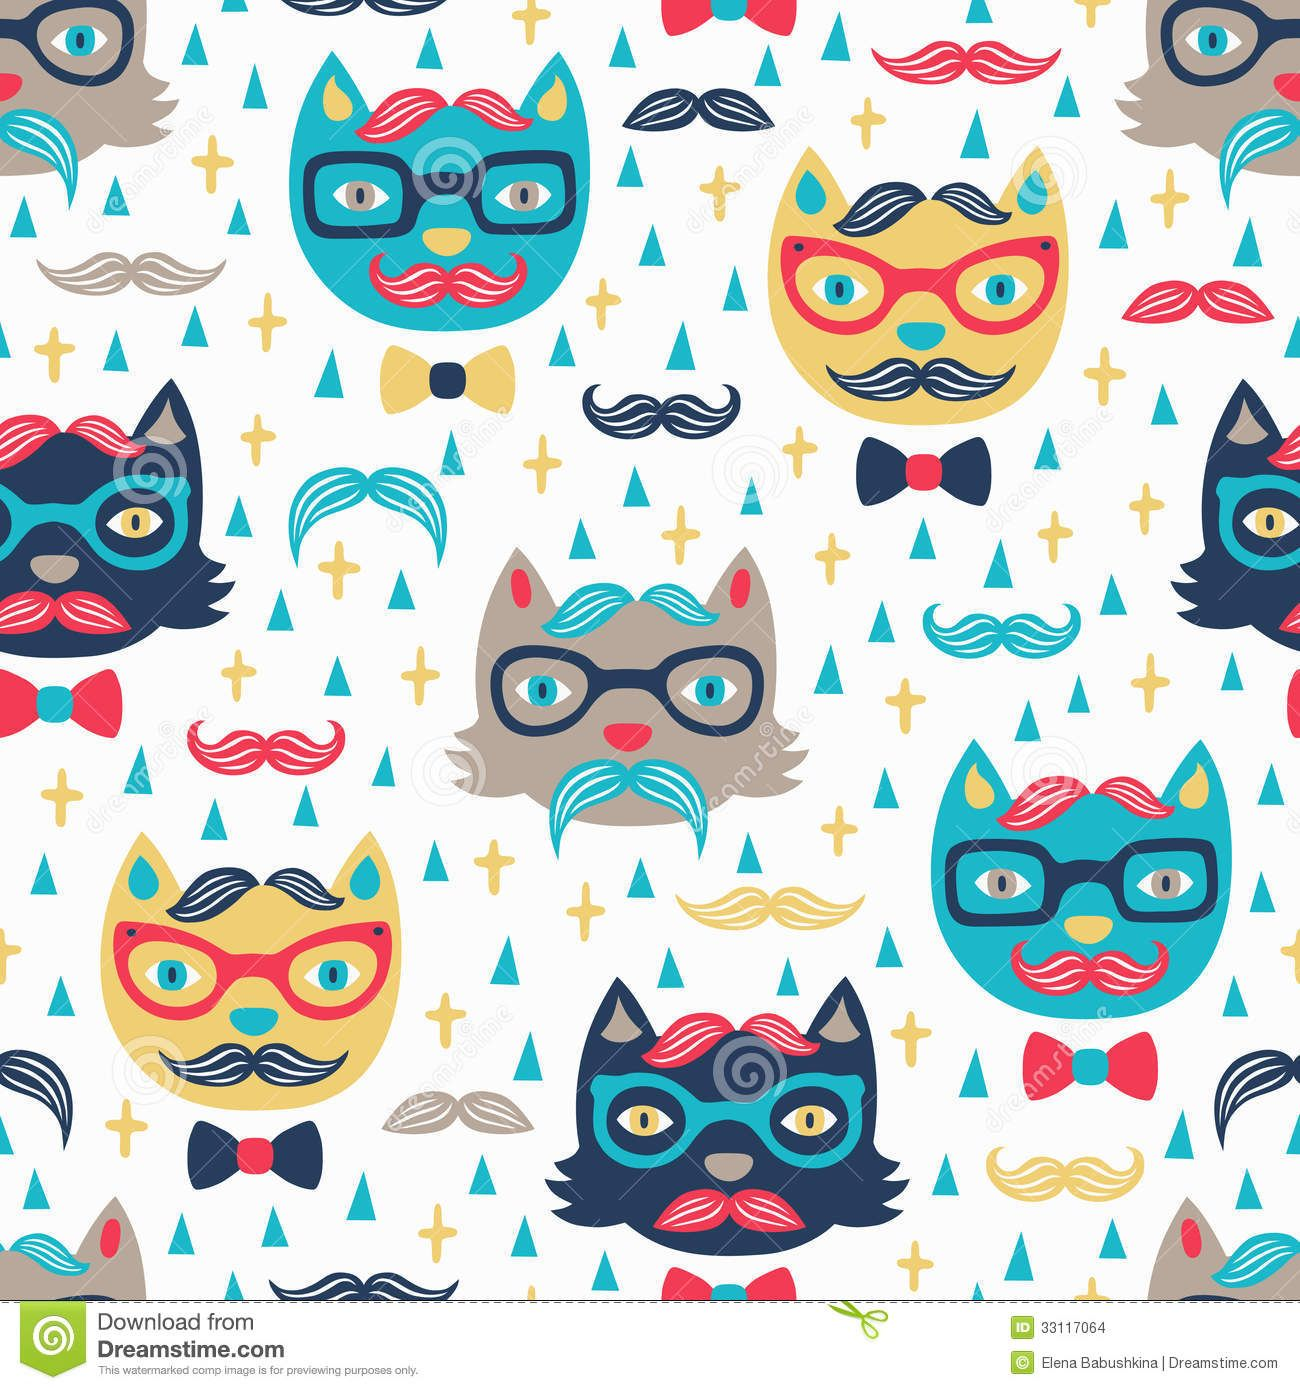 Hipster pattern tumblr backgrounds